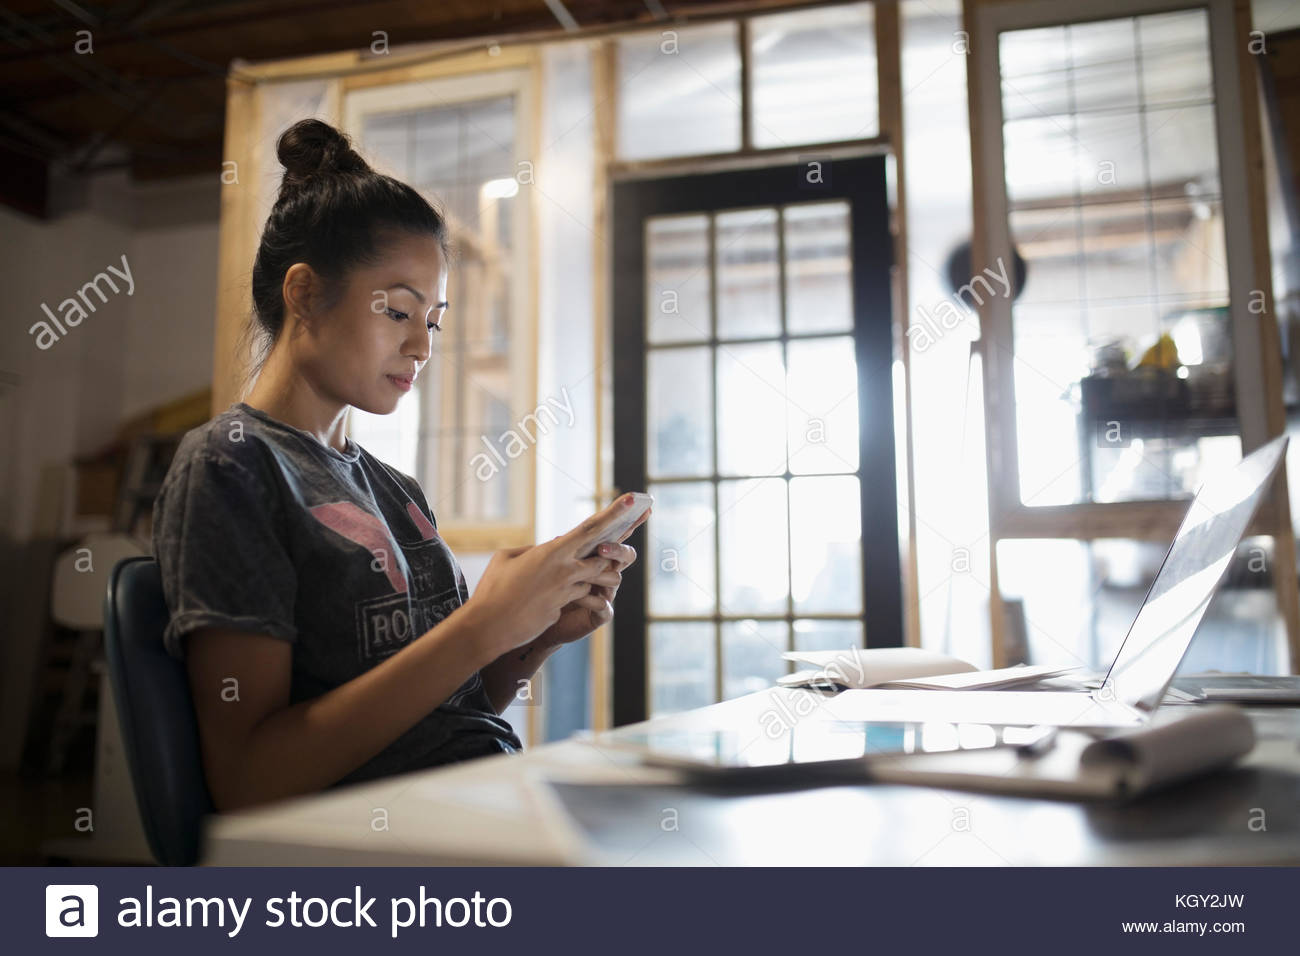 Young woman texting with smart phone at laptop in office - Stock Image